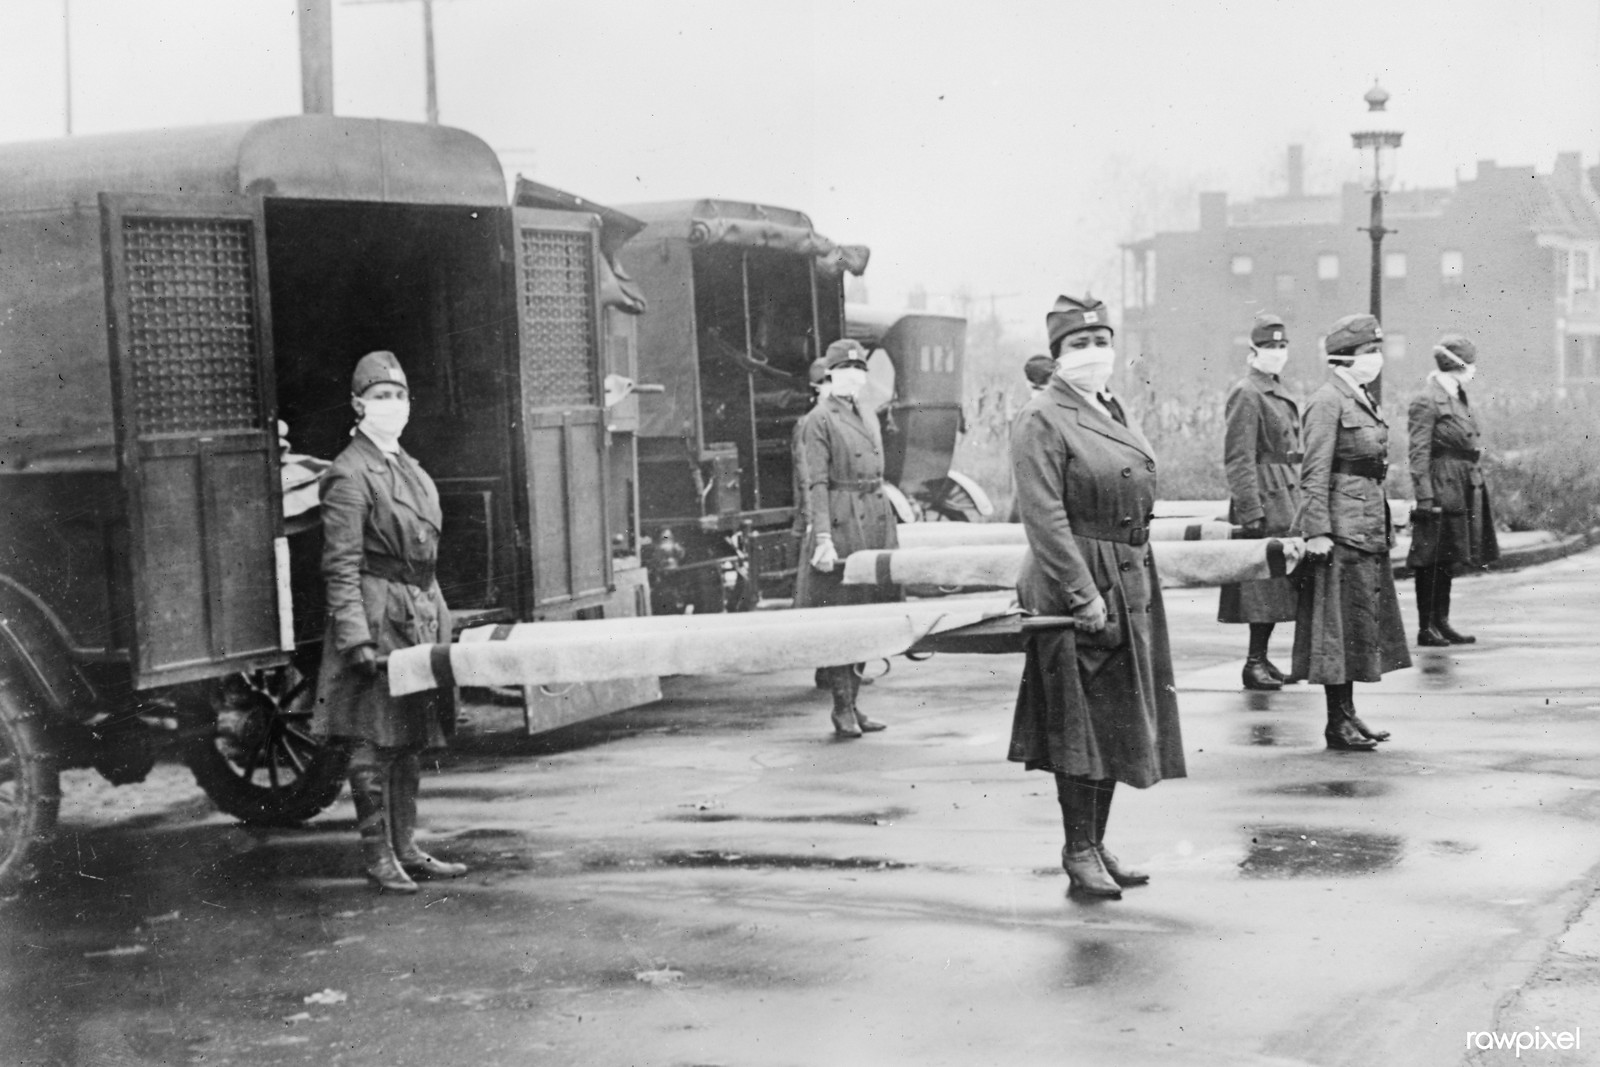 St. Louis Red Cross Motor Corps on duty during influenza epidemic (1918). Original from Library of Congress. Digitally enhanced by rawpixel.